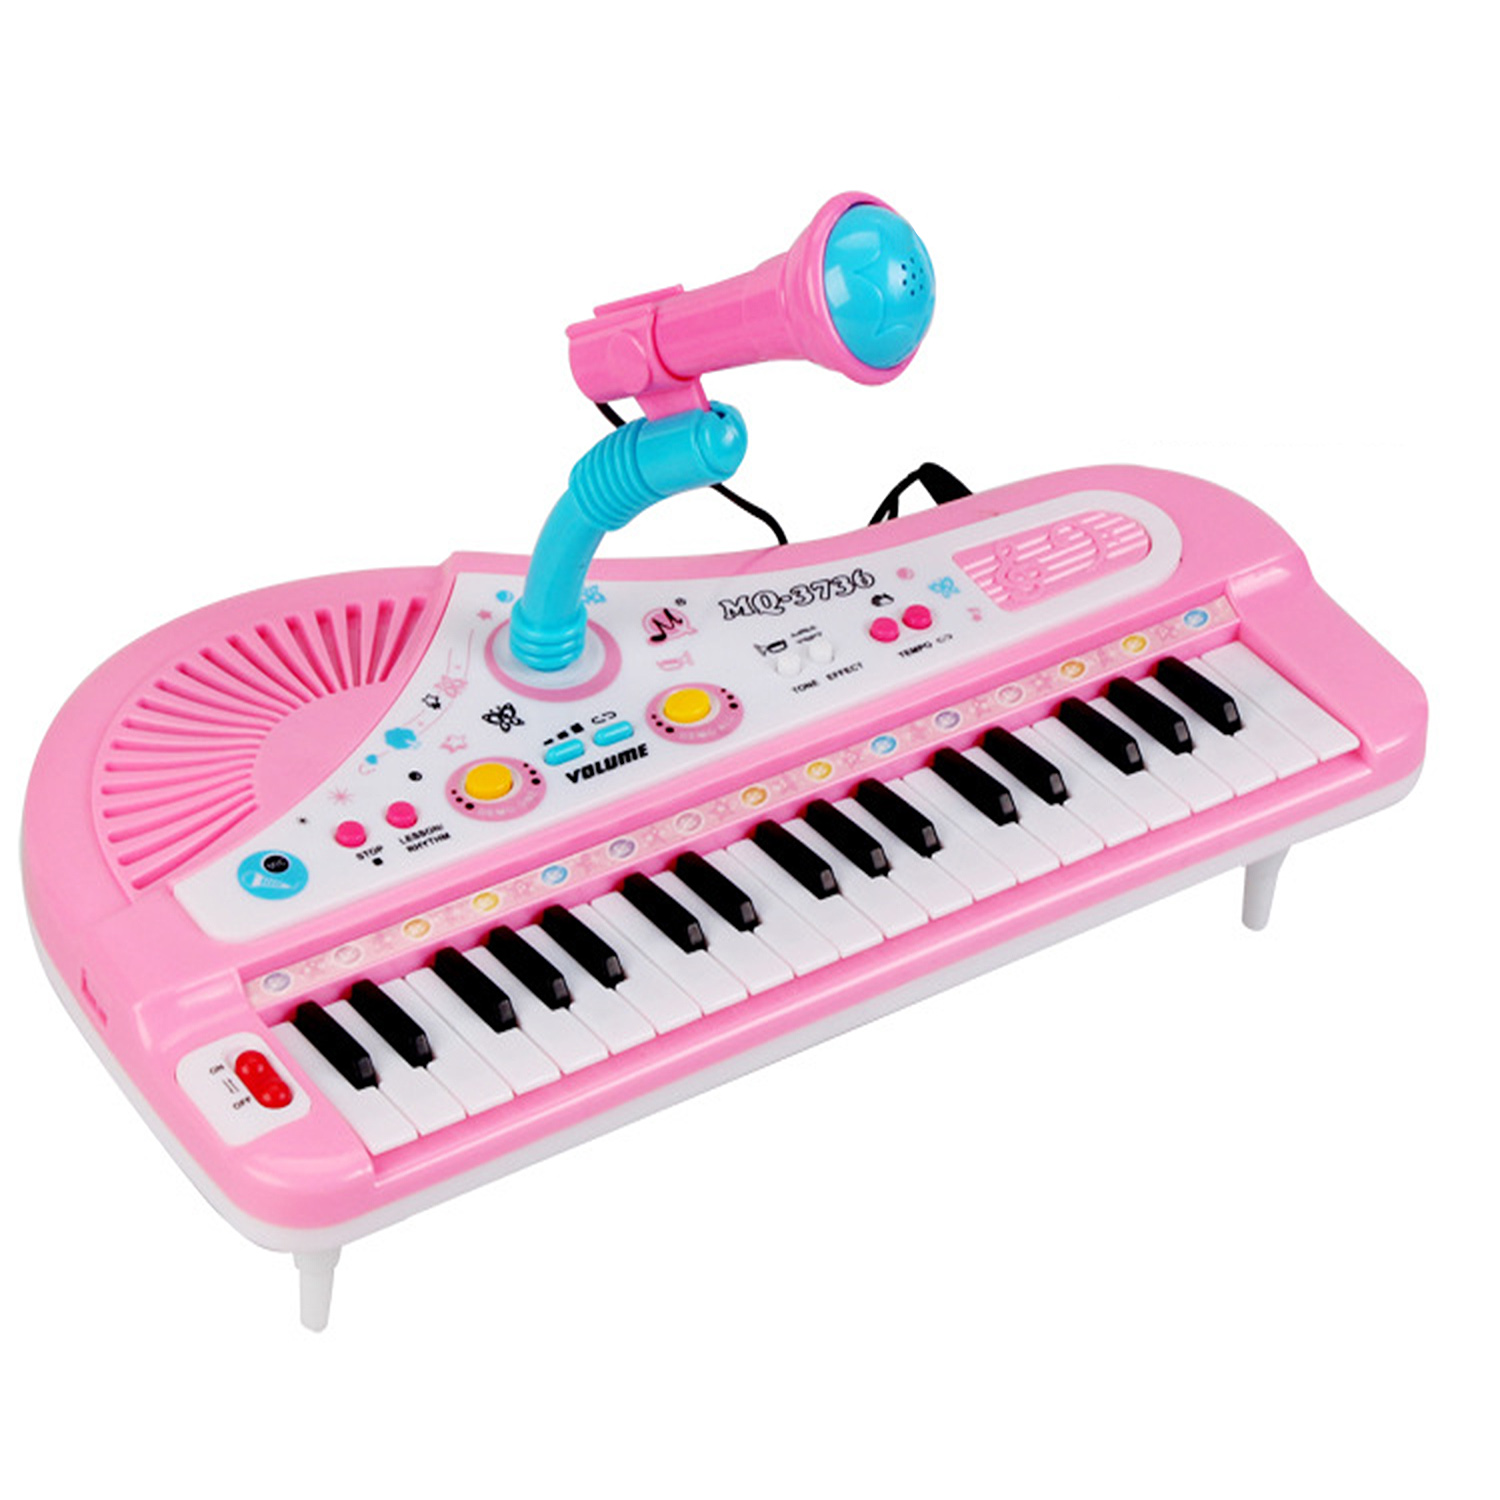 Kids 37 Keys Mini Simulation Electrical Keyboard Piano Toy with Microphone Musical Instrument Developmental Educational Toy